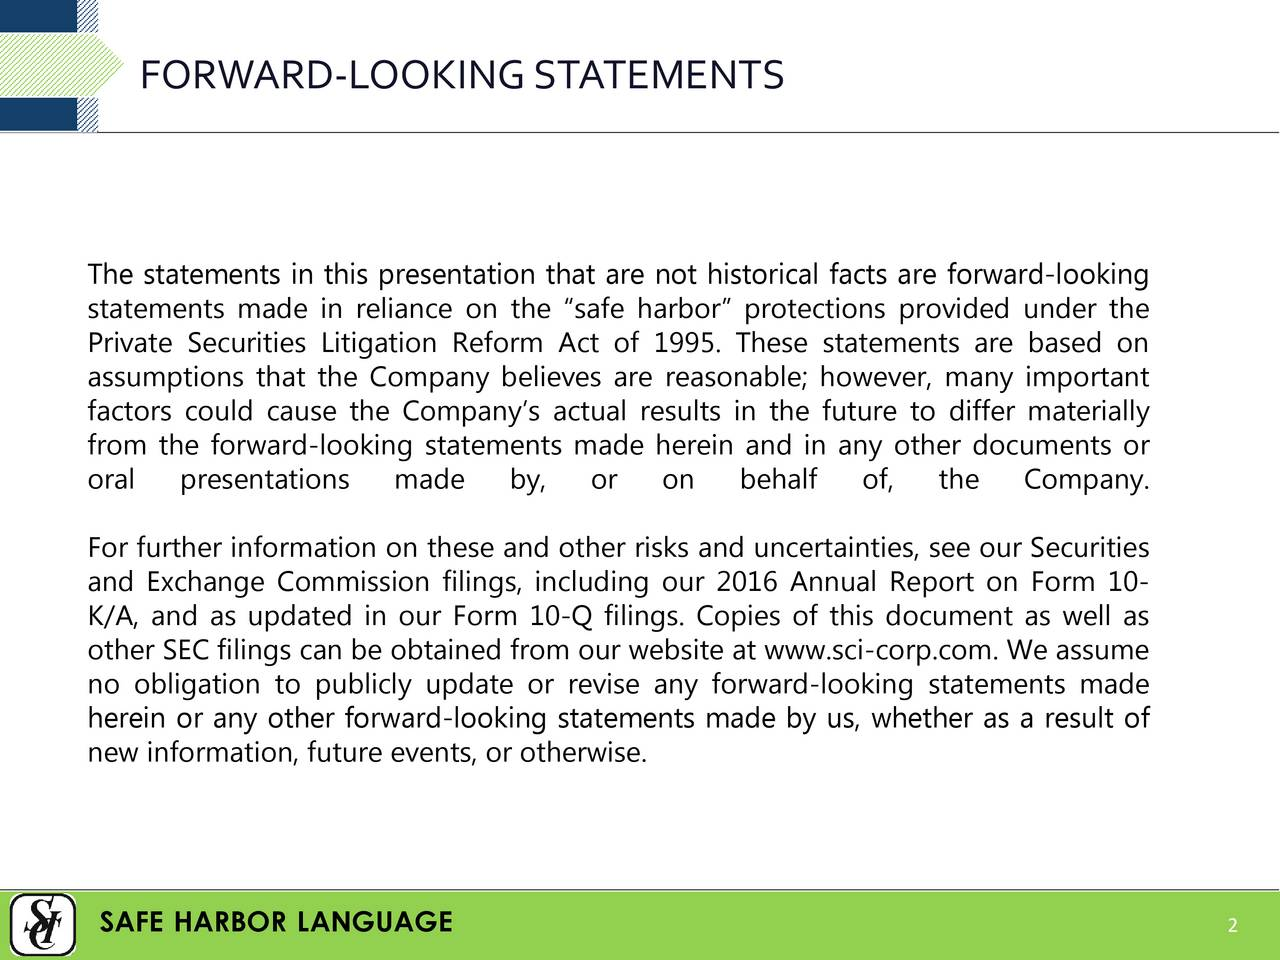 The statements in this presentation that are not historical facts are forward-looking statements made in reliance on the safe harbor protections provided under the Private Securities Litigation Reform Act of 1995. These statements are based on assumptions that the Company believes are reasonable; however, many important factors could cause the Companys actual results in the future to differ materially from the forward-looking statements made herein and in any other documents or oral presentations made by, or on behalf of, the Company. For further information on these and other risks and uncertainties, see our Securities and Exchange Commission filings, including our 2016 Annual Report on Form 10- K/A, and as updated in our Form 10-Q filings. Copies of this document as well as other SEC filings can be obtained from our website at www.sci-corp.com. We assume no obligation to publicly update or revise any forward-looking statements made herein or any other forward-looking statements made by us, whether as a result of new information, future events, or otherwise. SAFE HARBOR LANGUAGE 2